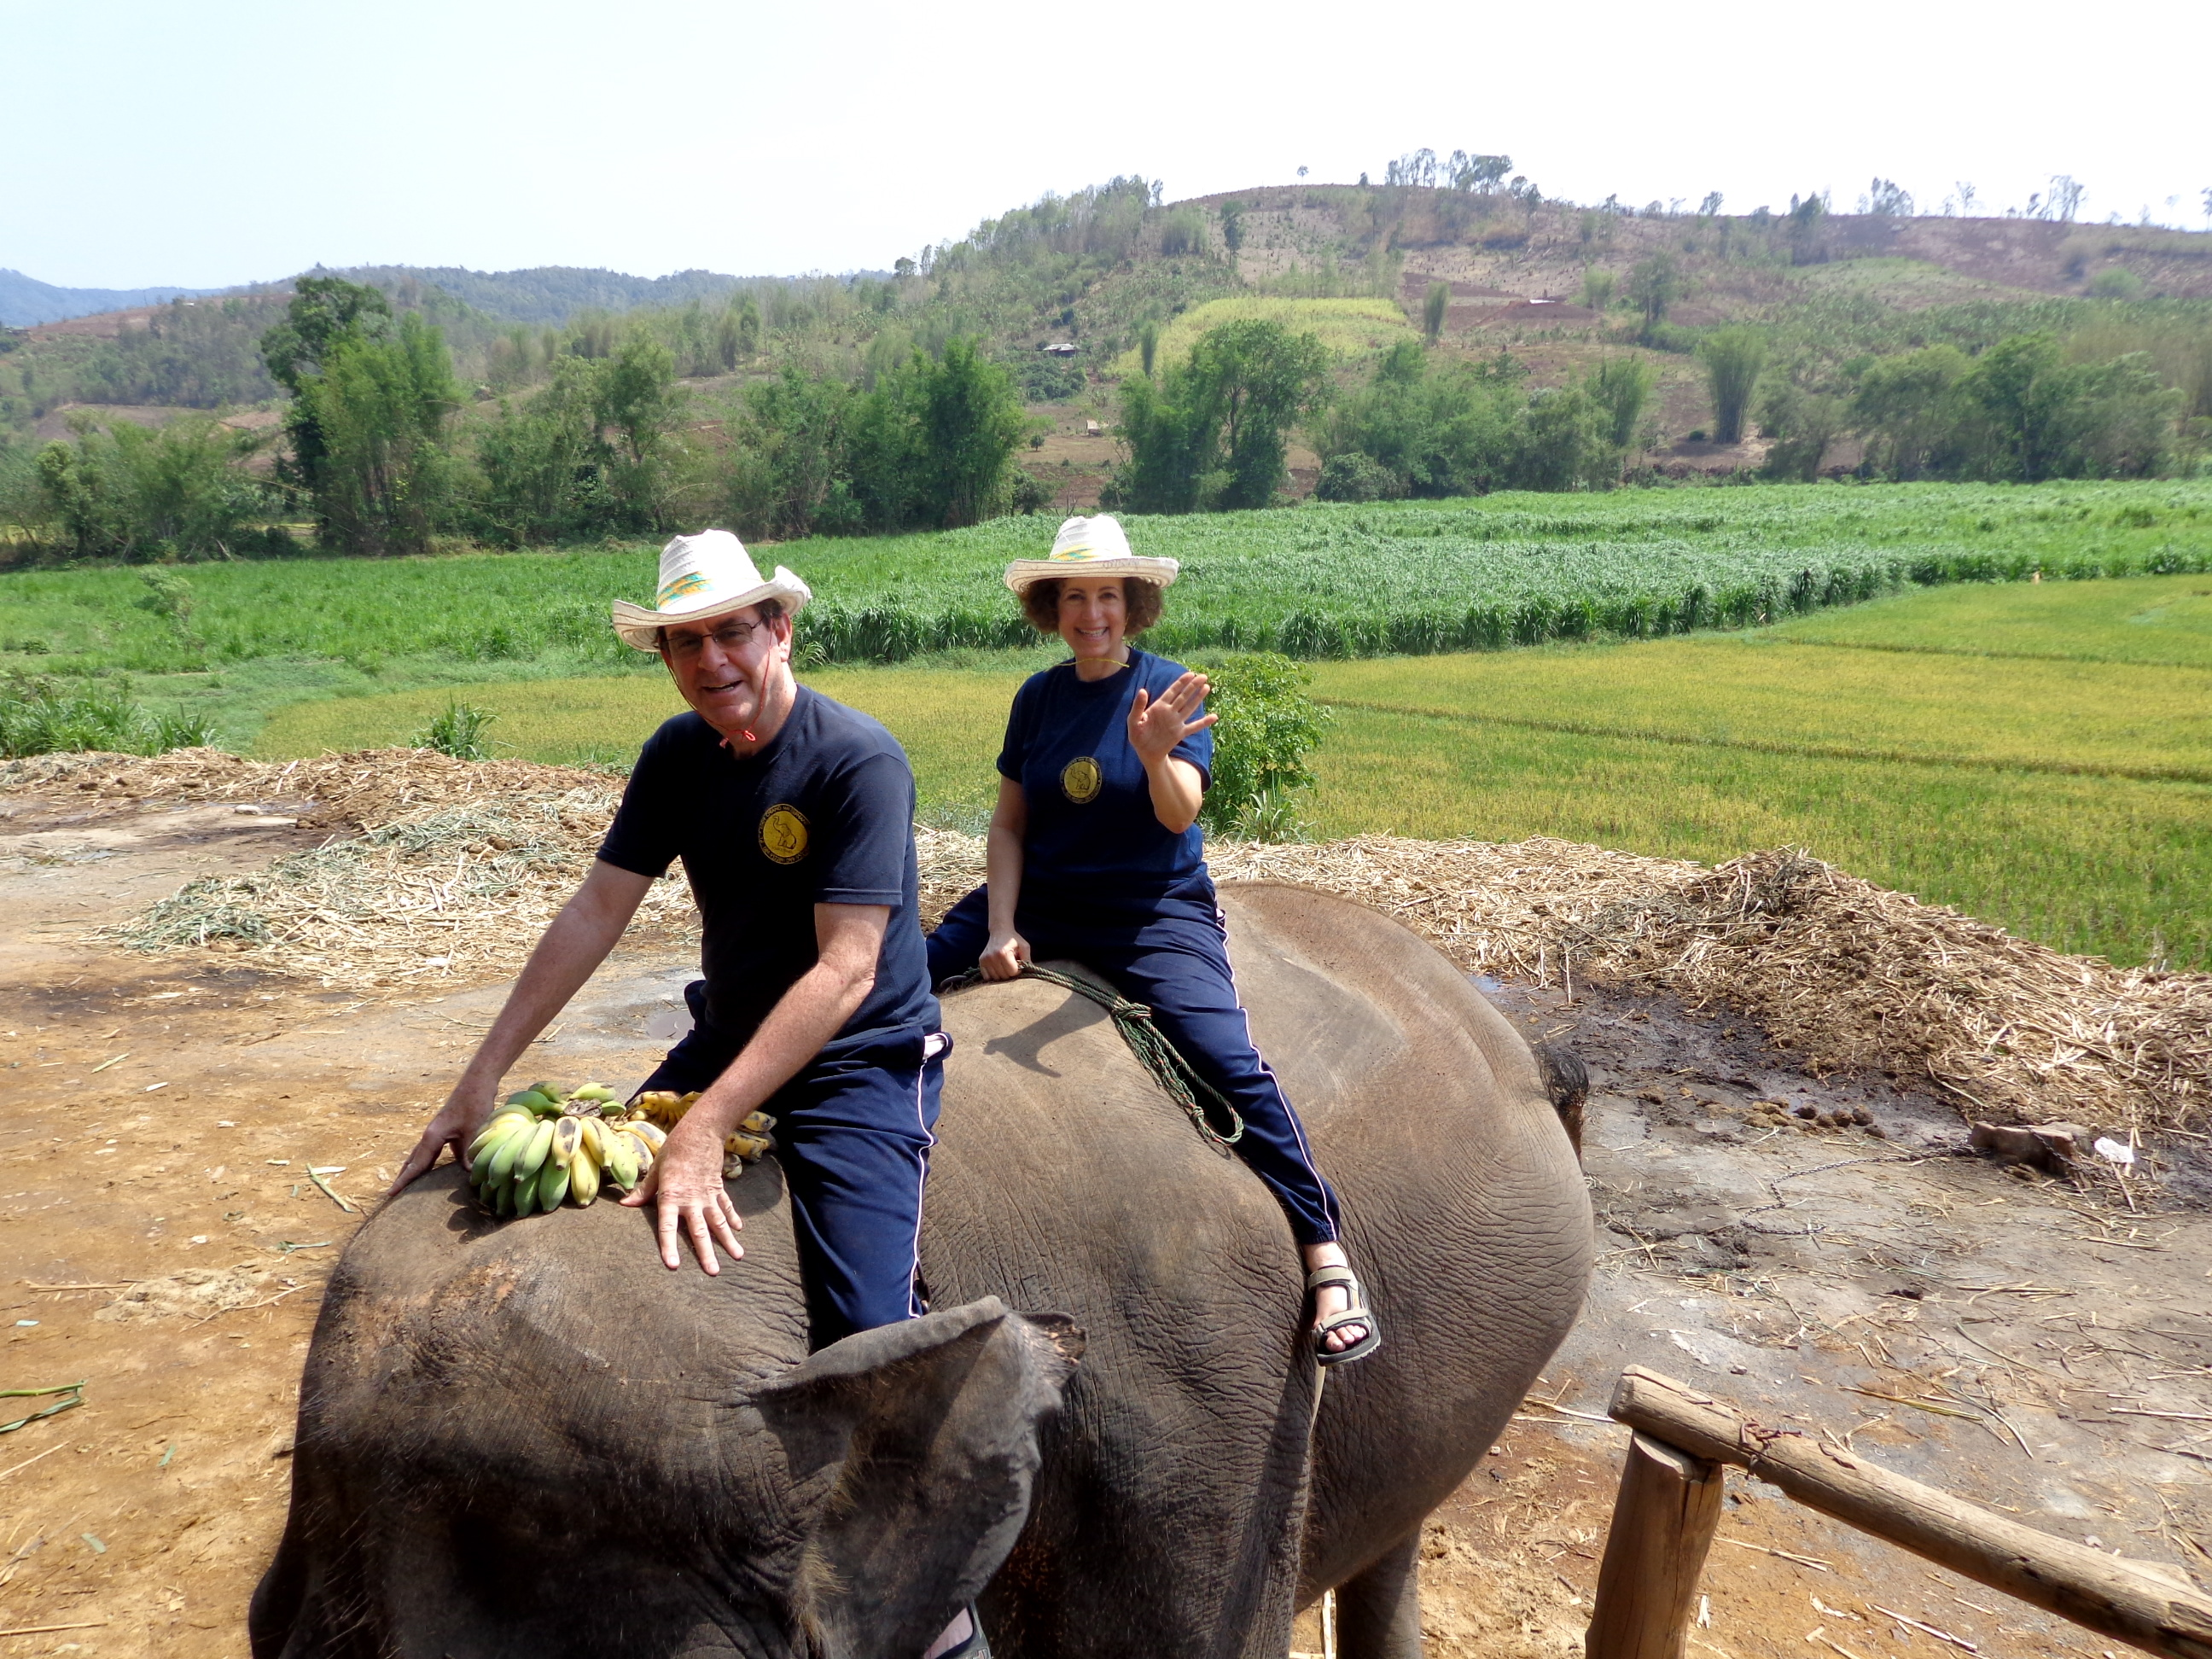 My parents riding an elephant in Chiang Mai, Thailand